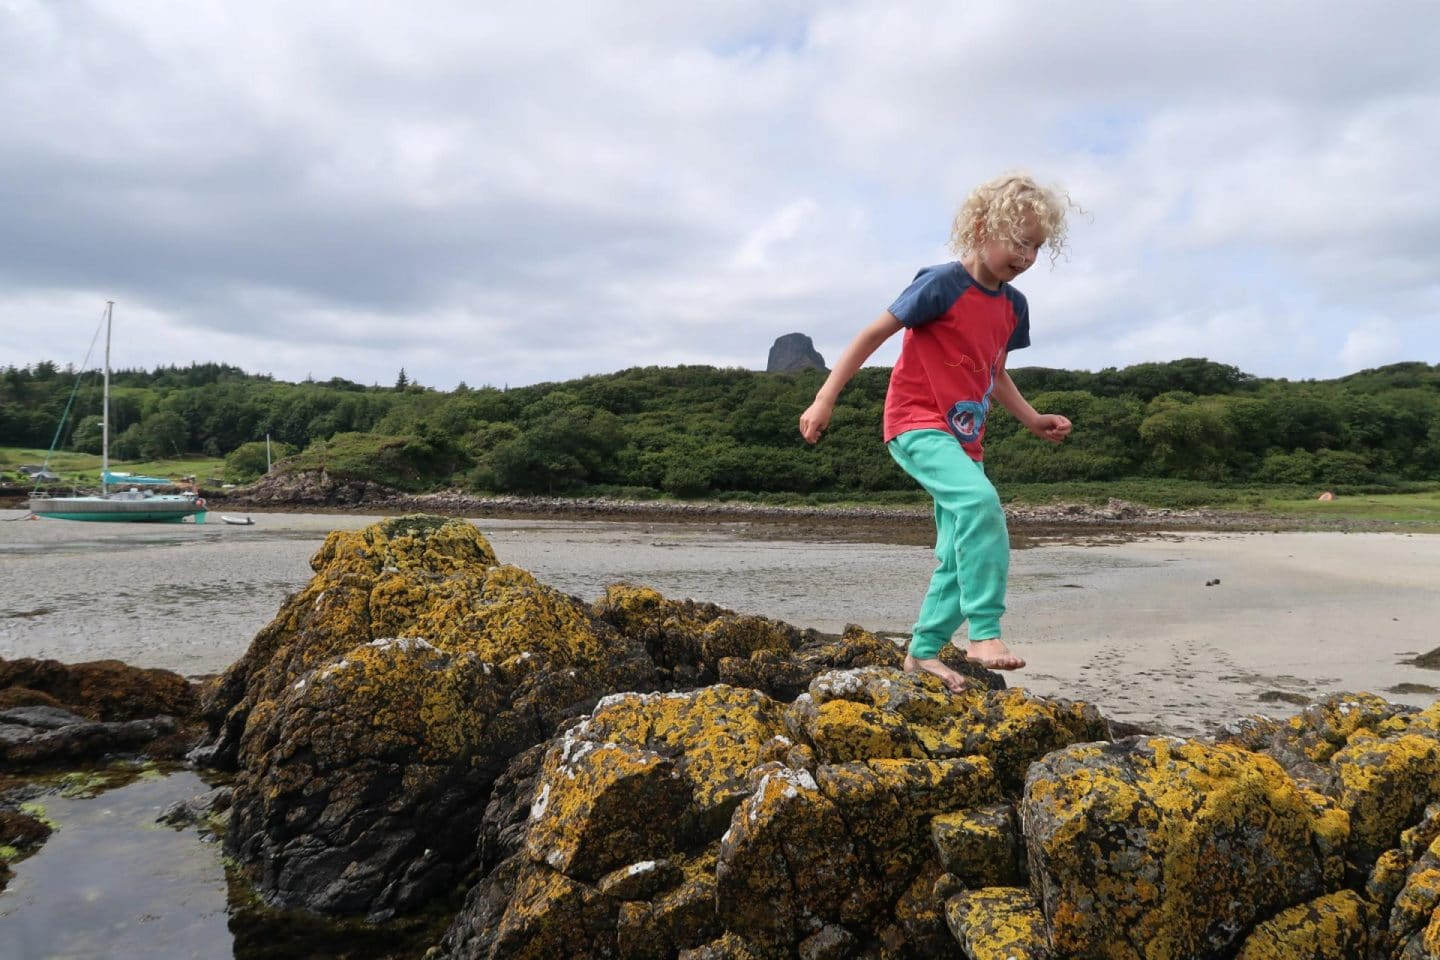 Isle of Eigg kids playing